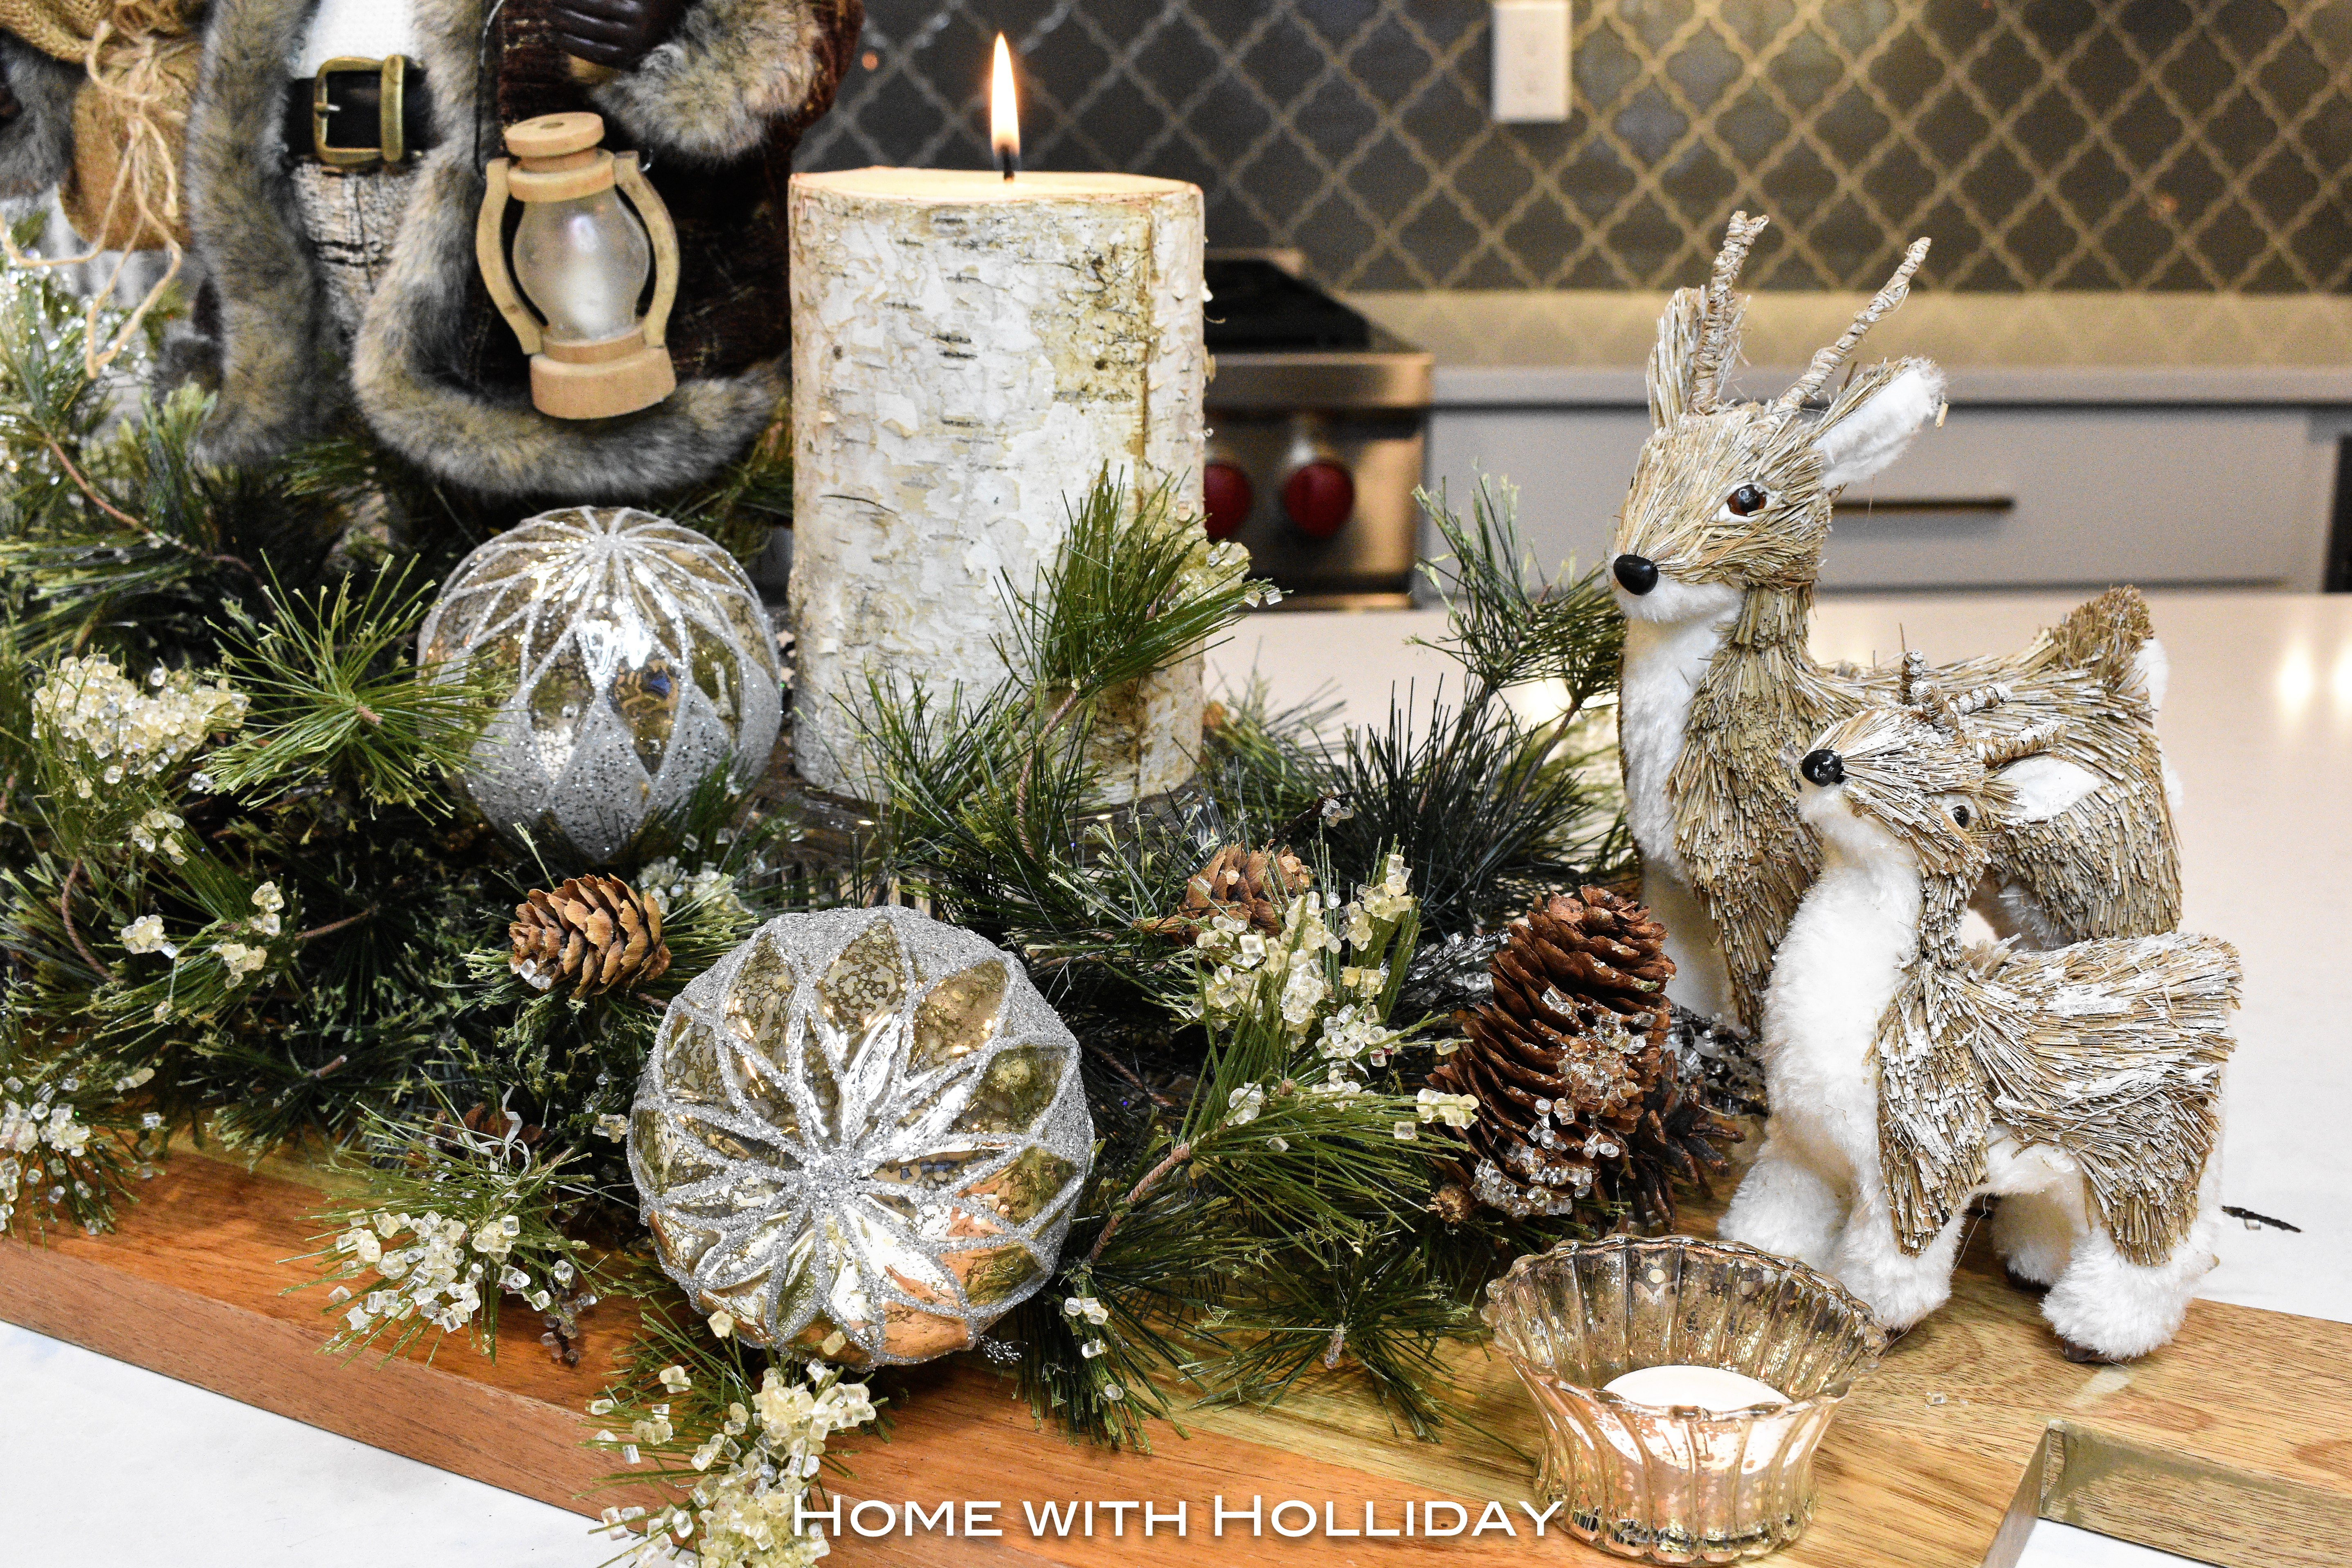 Rustic Winter Christmas Centerpiece with Deer Figurines - Home with Holliday